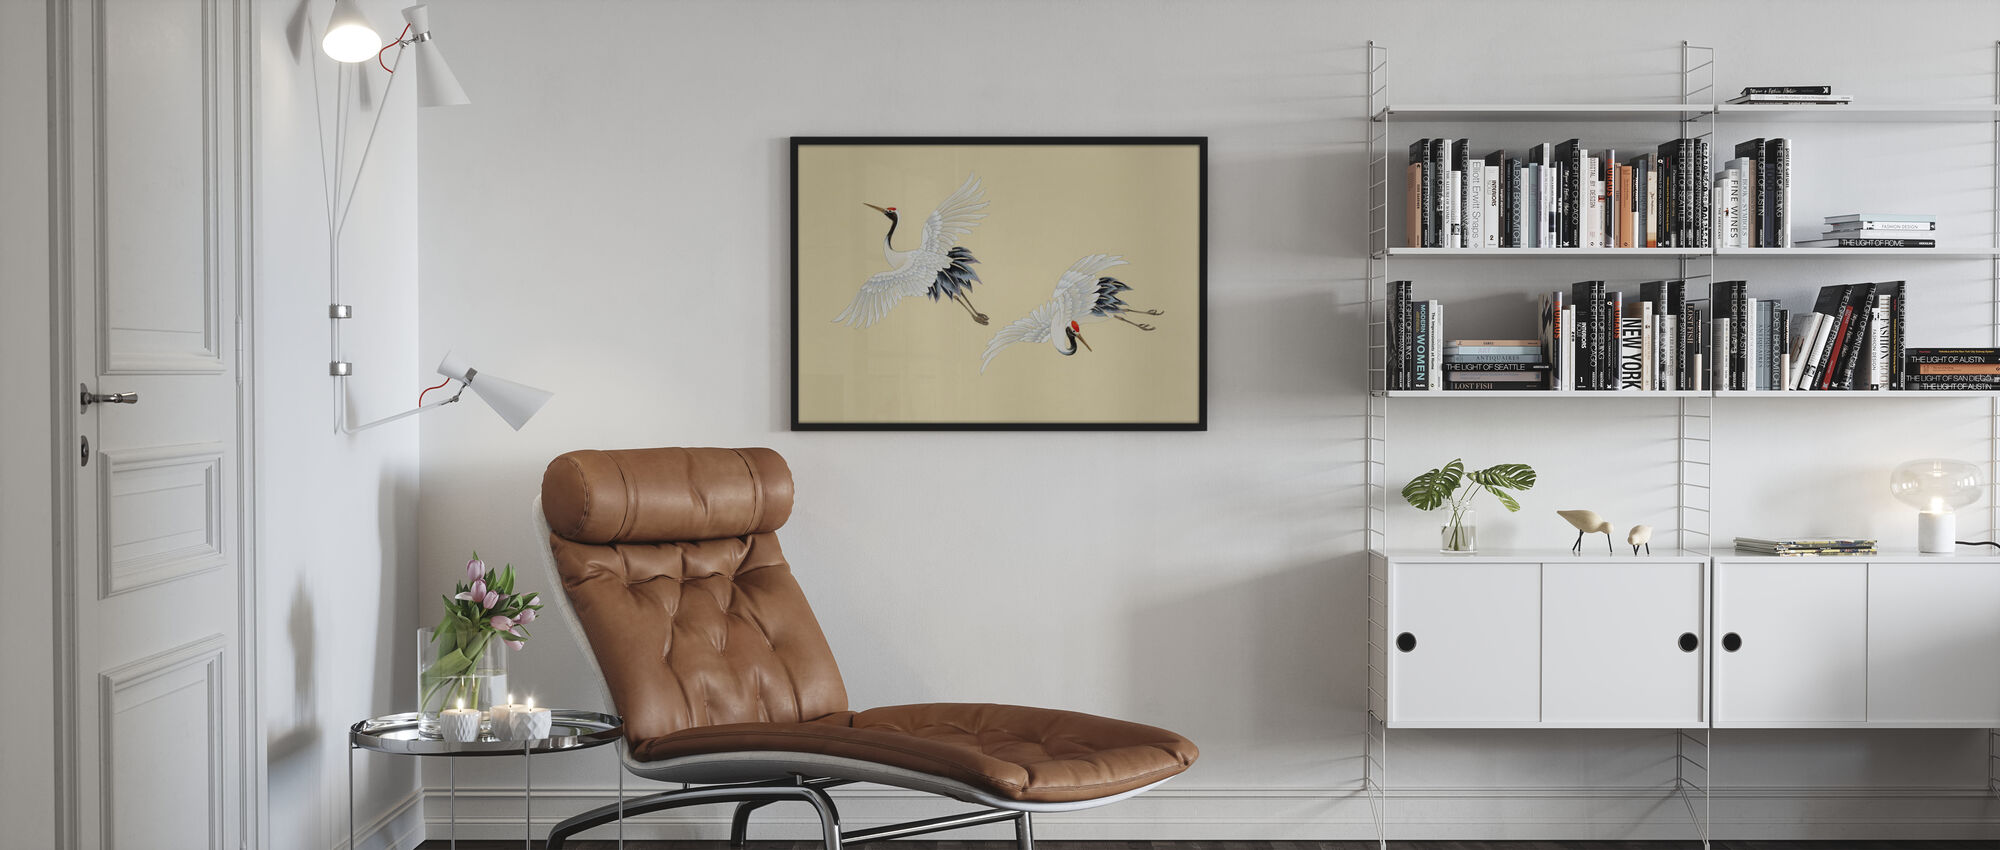 Two Cranes - Poster - Living Room